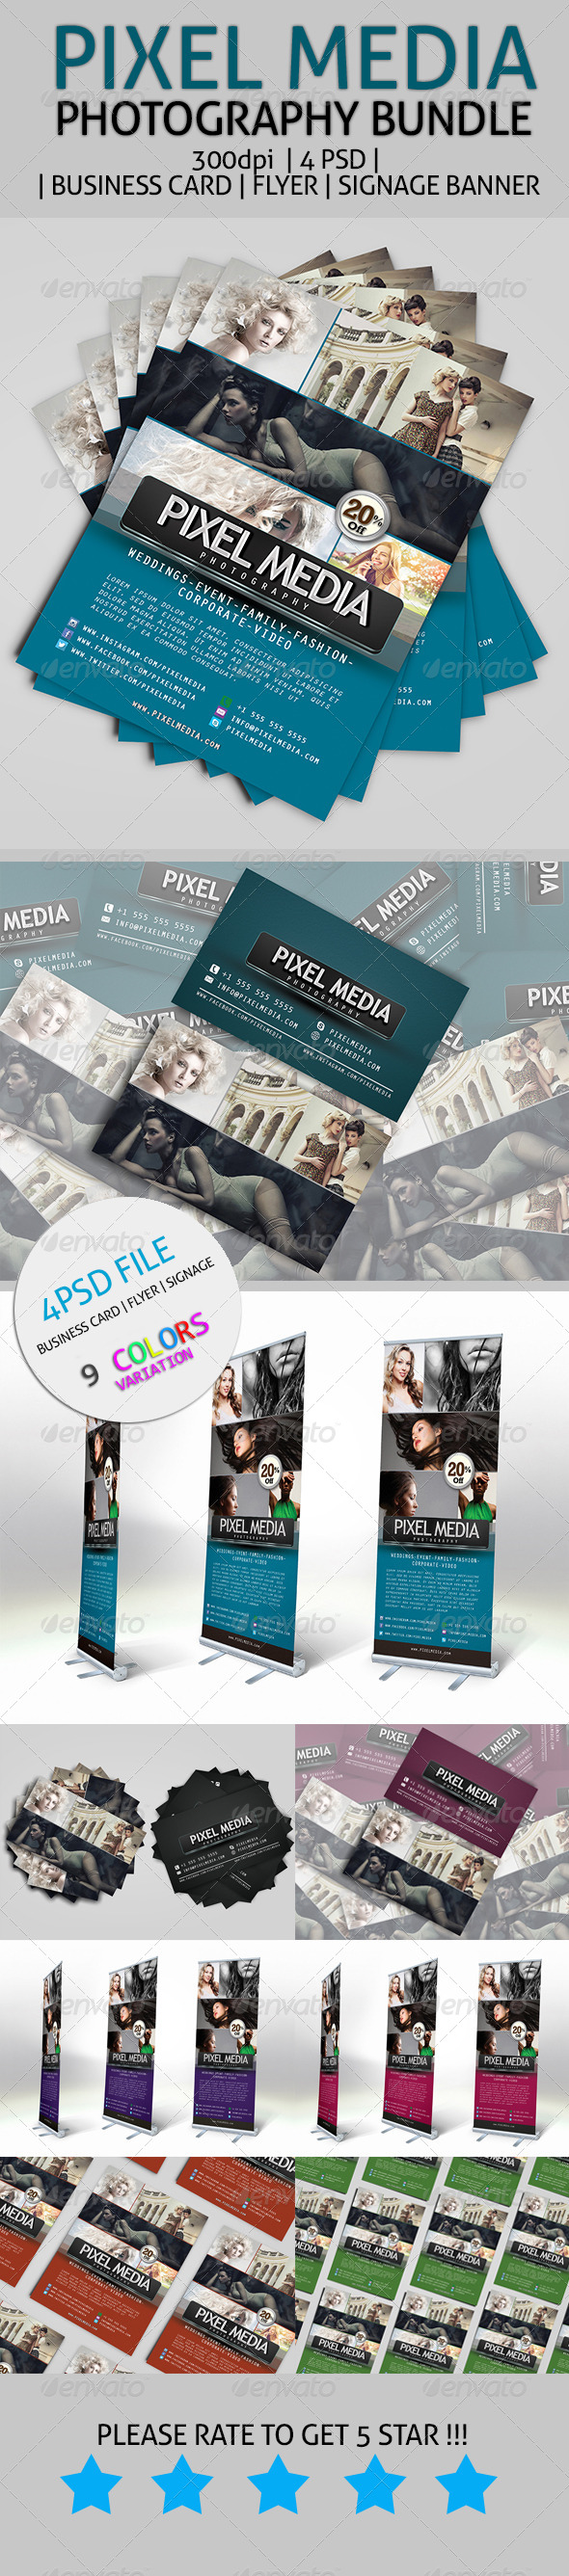 GraphicRiver Pixel Media Photography Bundle 7648021